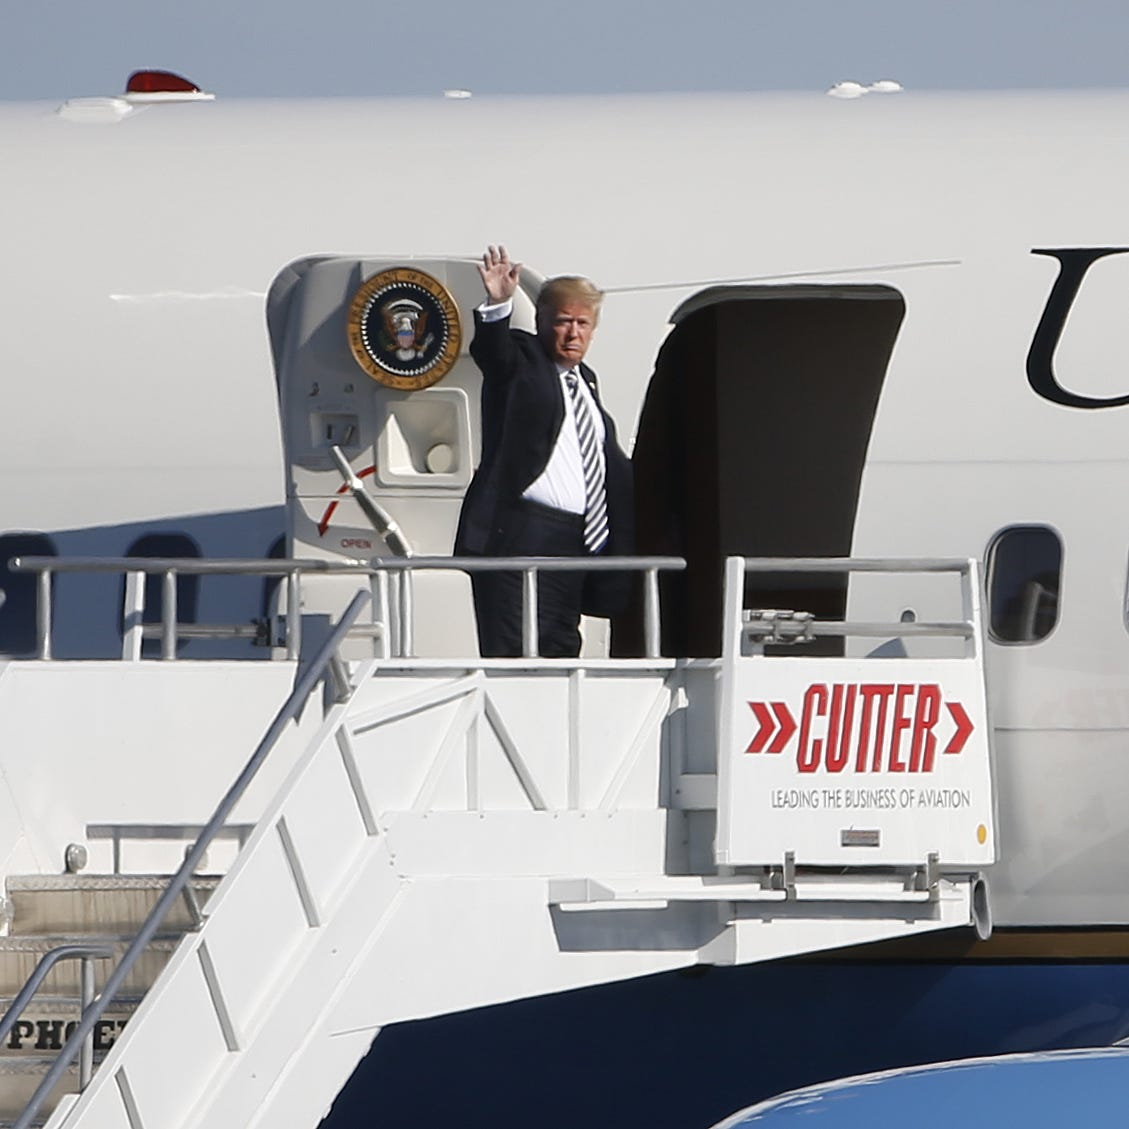 He came, he rallied, he flew away: President Donald Trump's whirlwind trip to Arizona